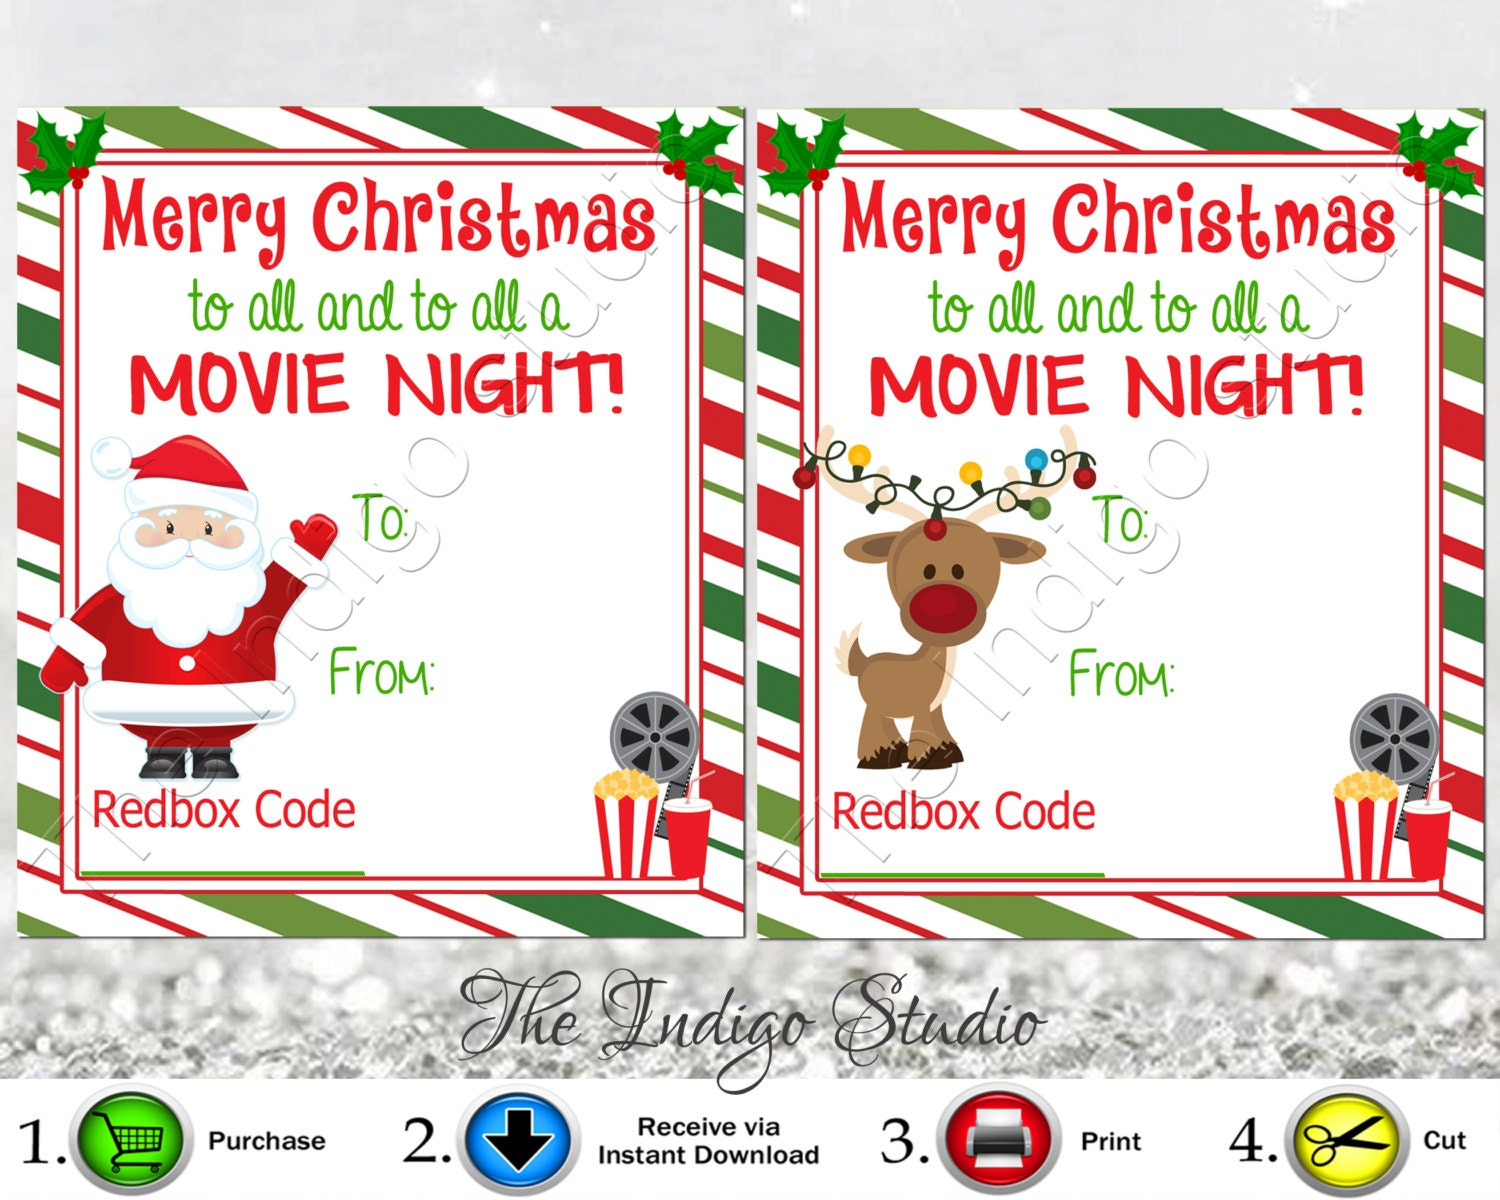 picture about Redbox Printable Tags referred to as Redbox Codes reward Tags Playing cards Electronic Printable 4 Alternative Ideas Merry Xmas in direction of all and in direction of all a Video Evening REDBOX Code Video Items